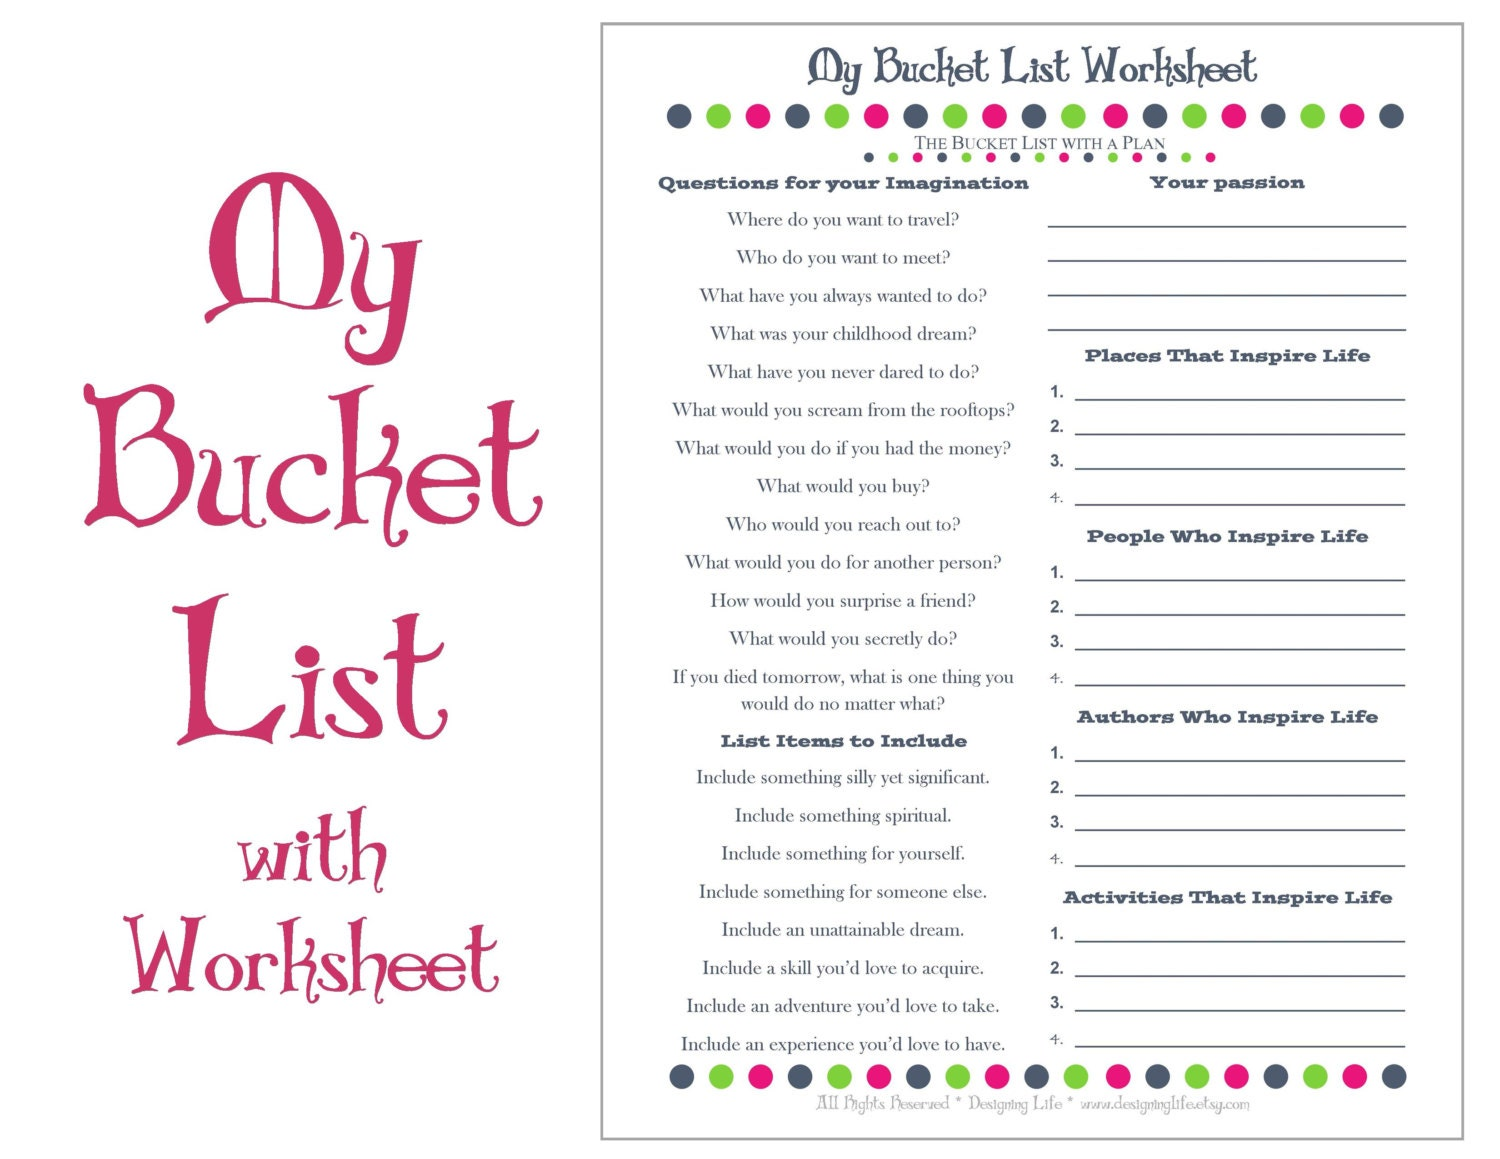 Worksheets Life Plan Worksheet bucket list printable with worksheet make a plan to live